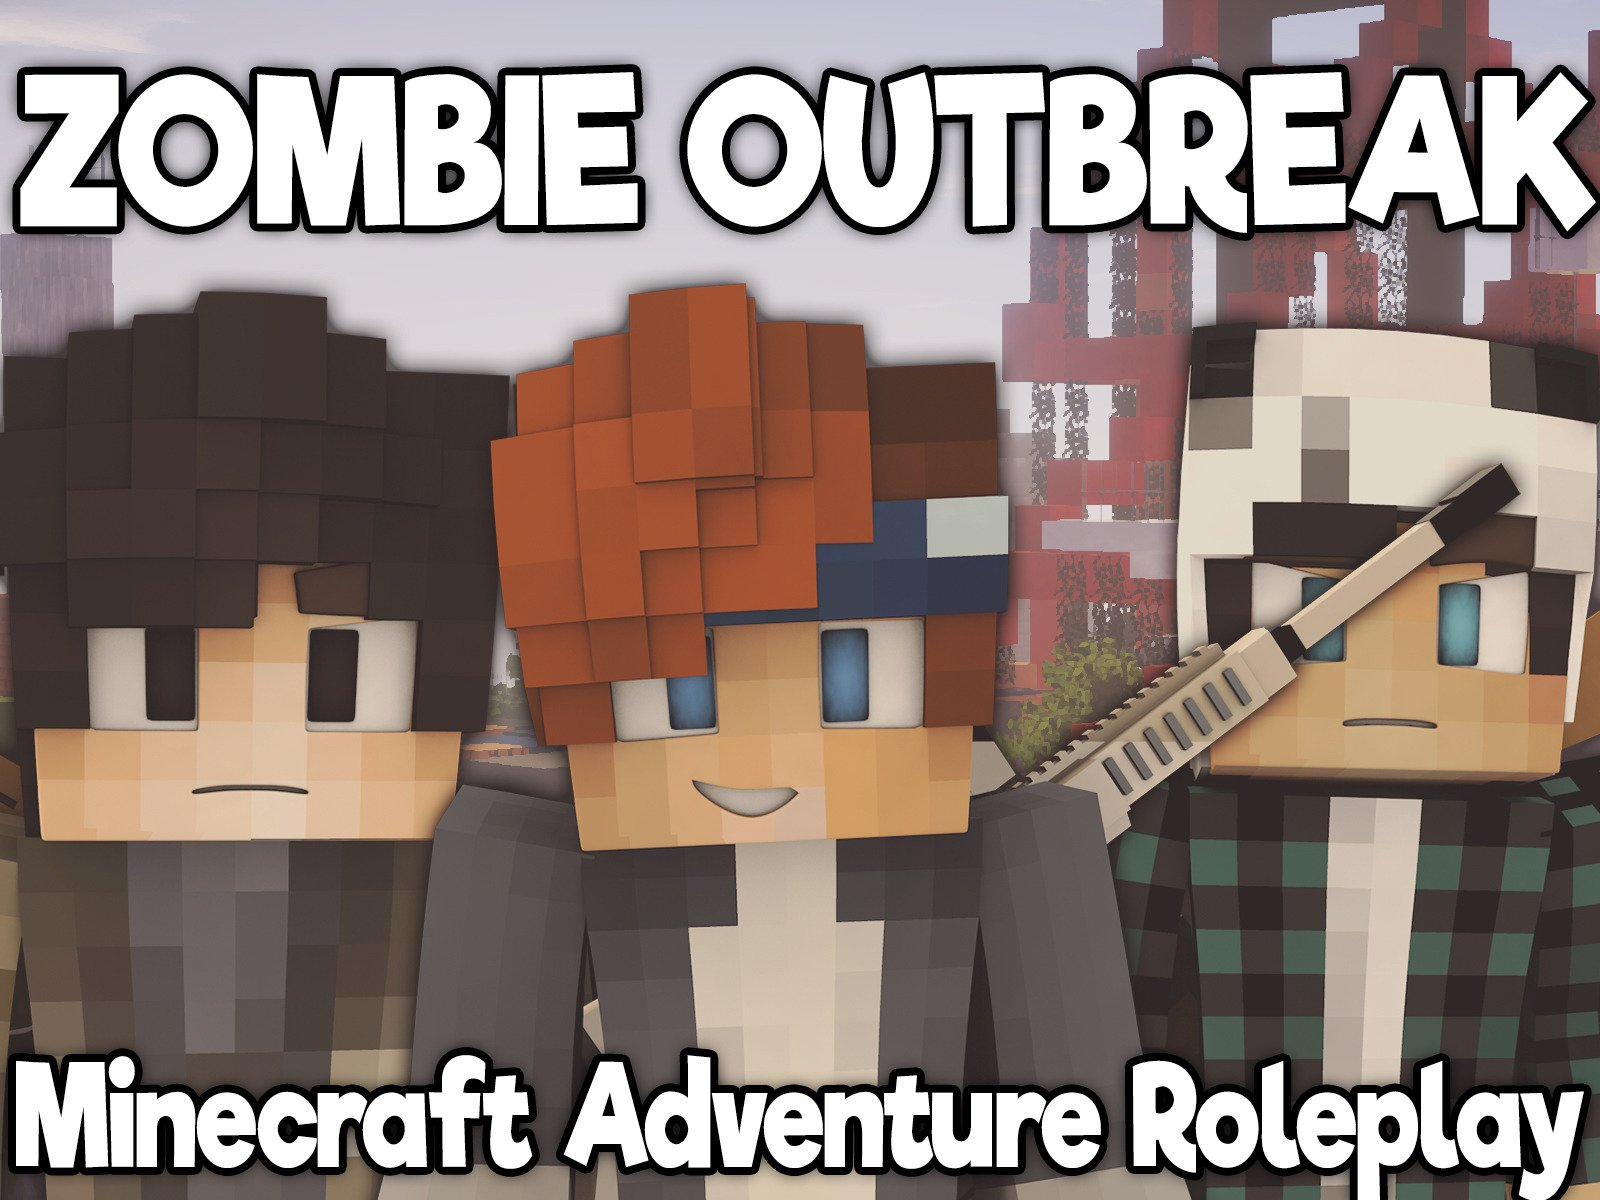 Clip: Zombie Outbreak (Minecraft Adventure Roleplay)